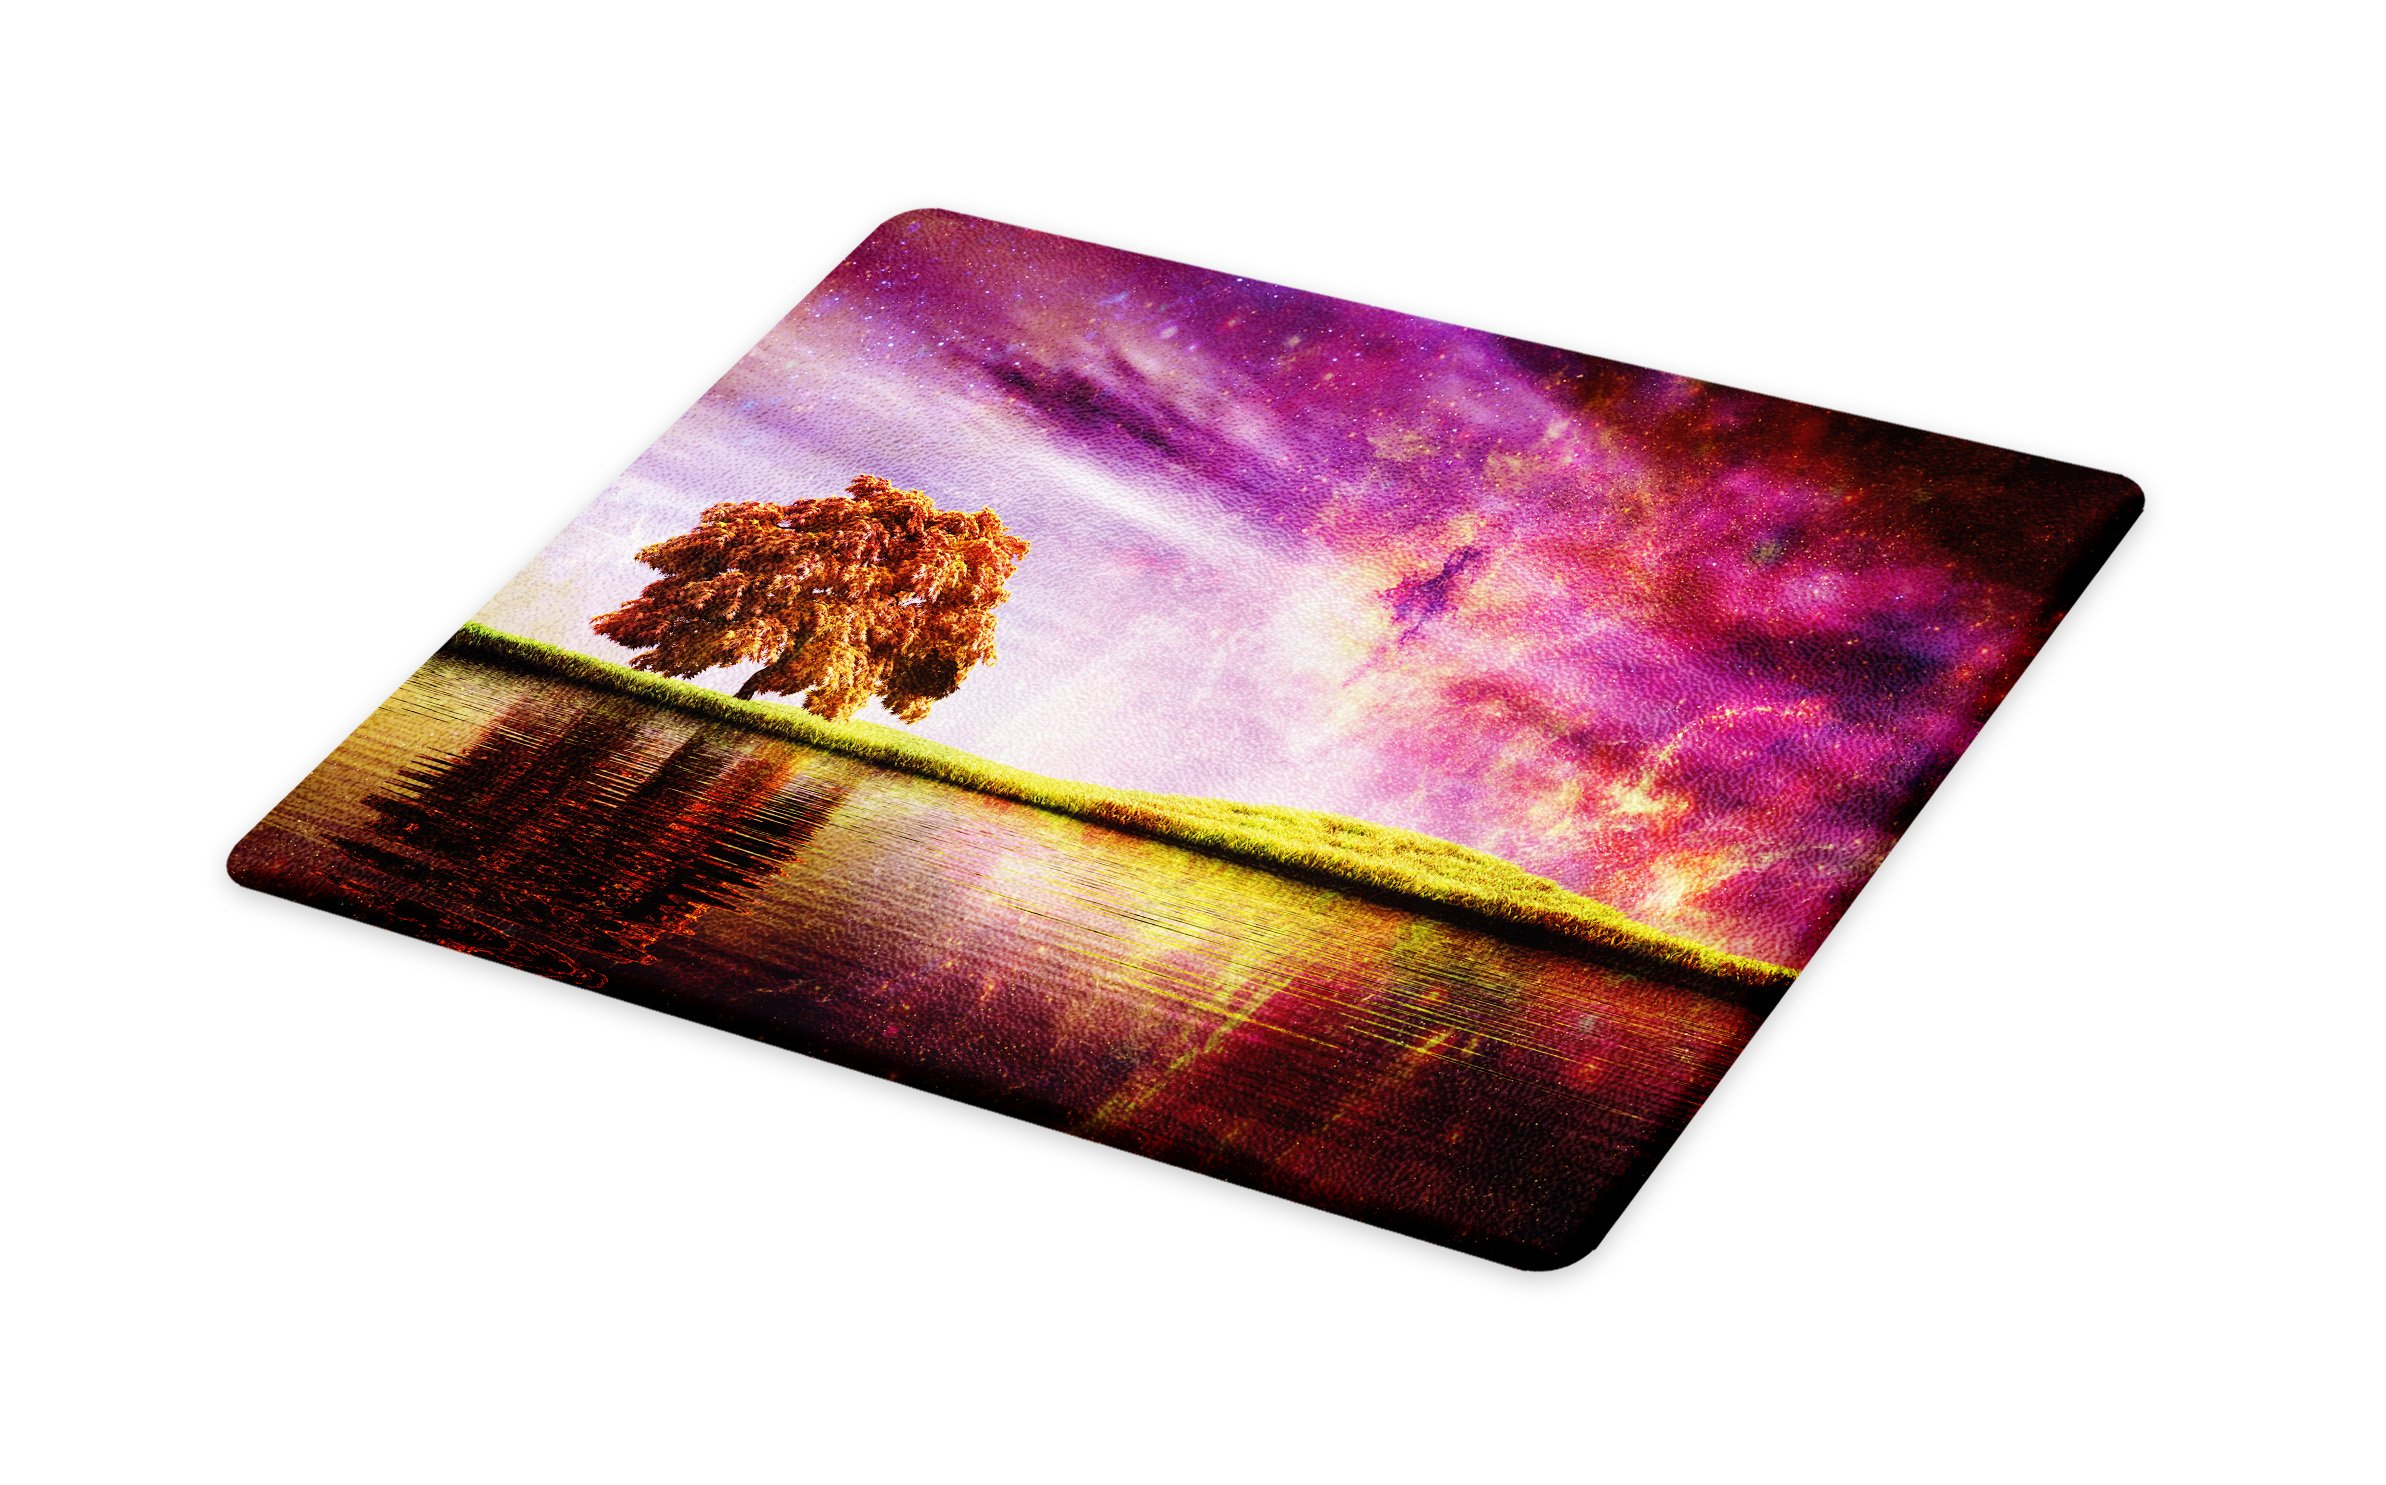 Lunarable Magical Cutting Board, Supernatural Sky Scenery with Mystical Northern Solar Theme and Star Clusters Photo, Decorative Tempered Glass Cutting and Serving Board, Large Size, Purple